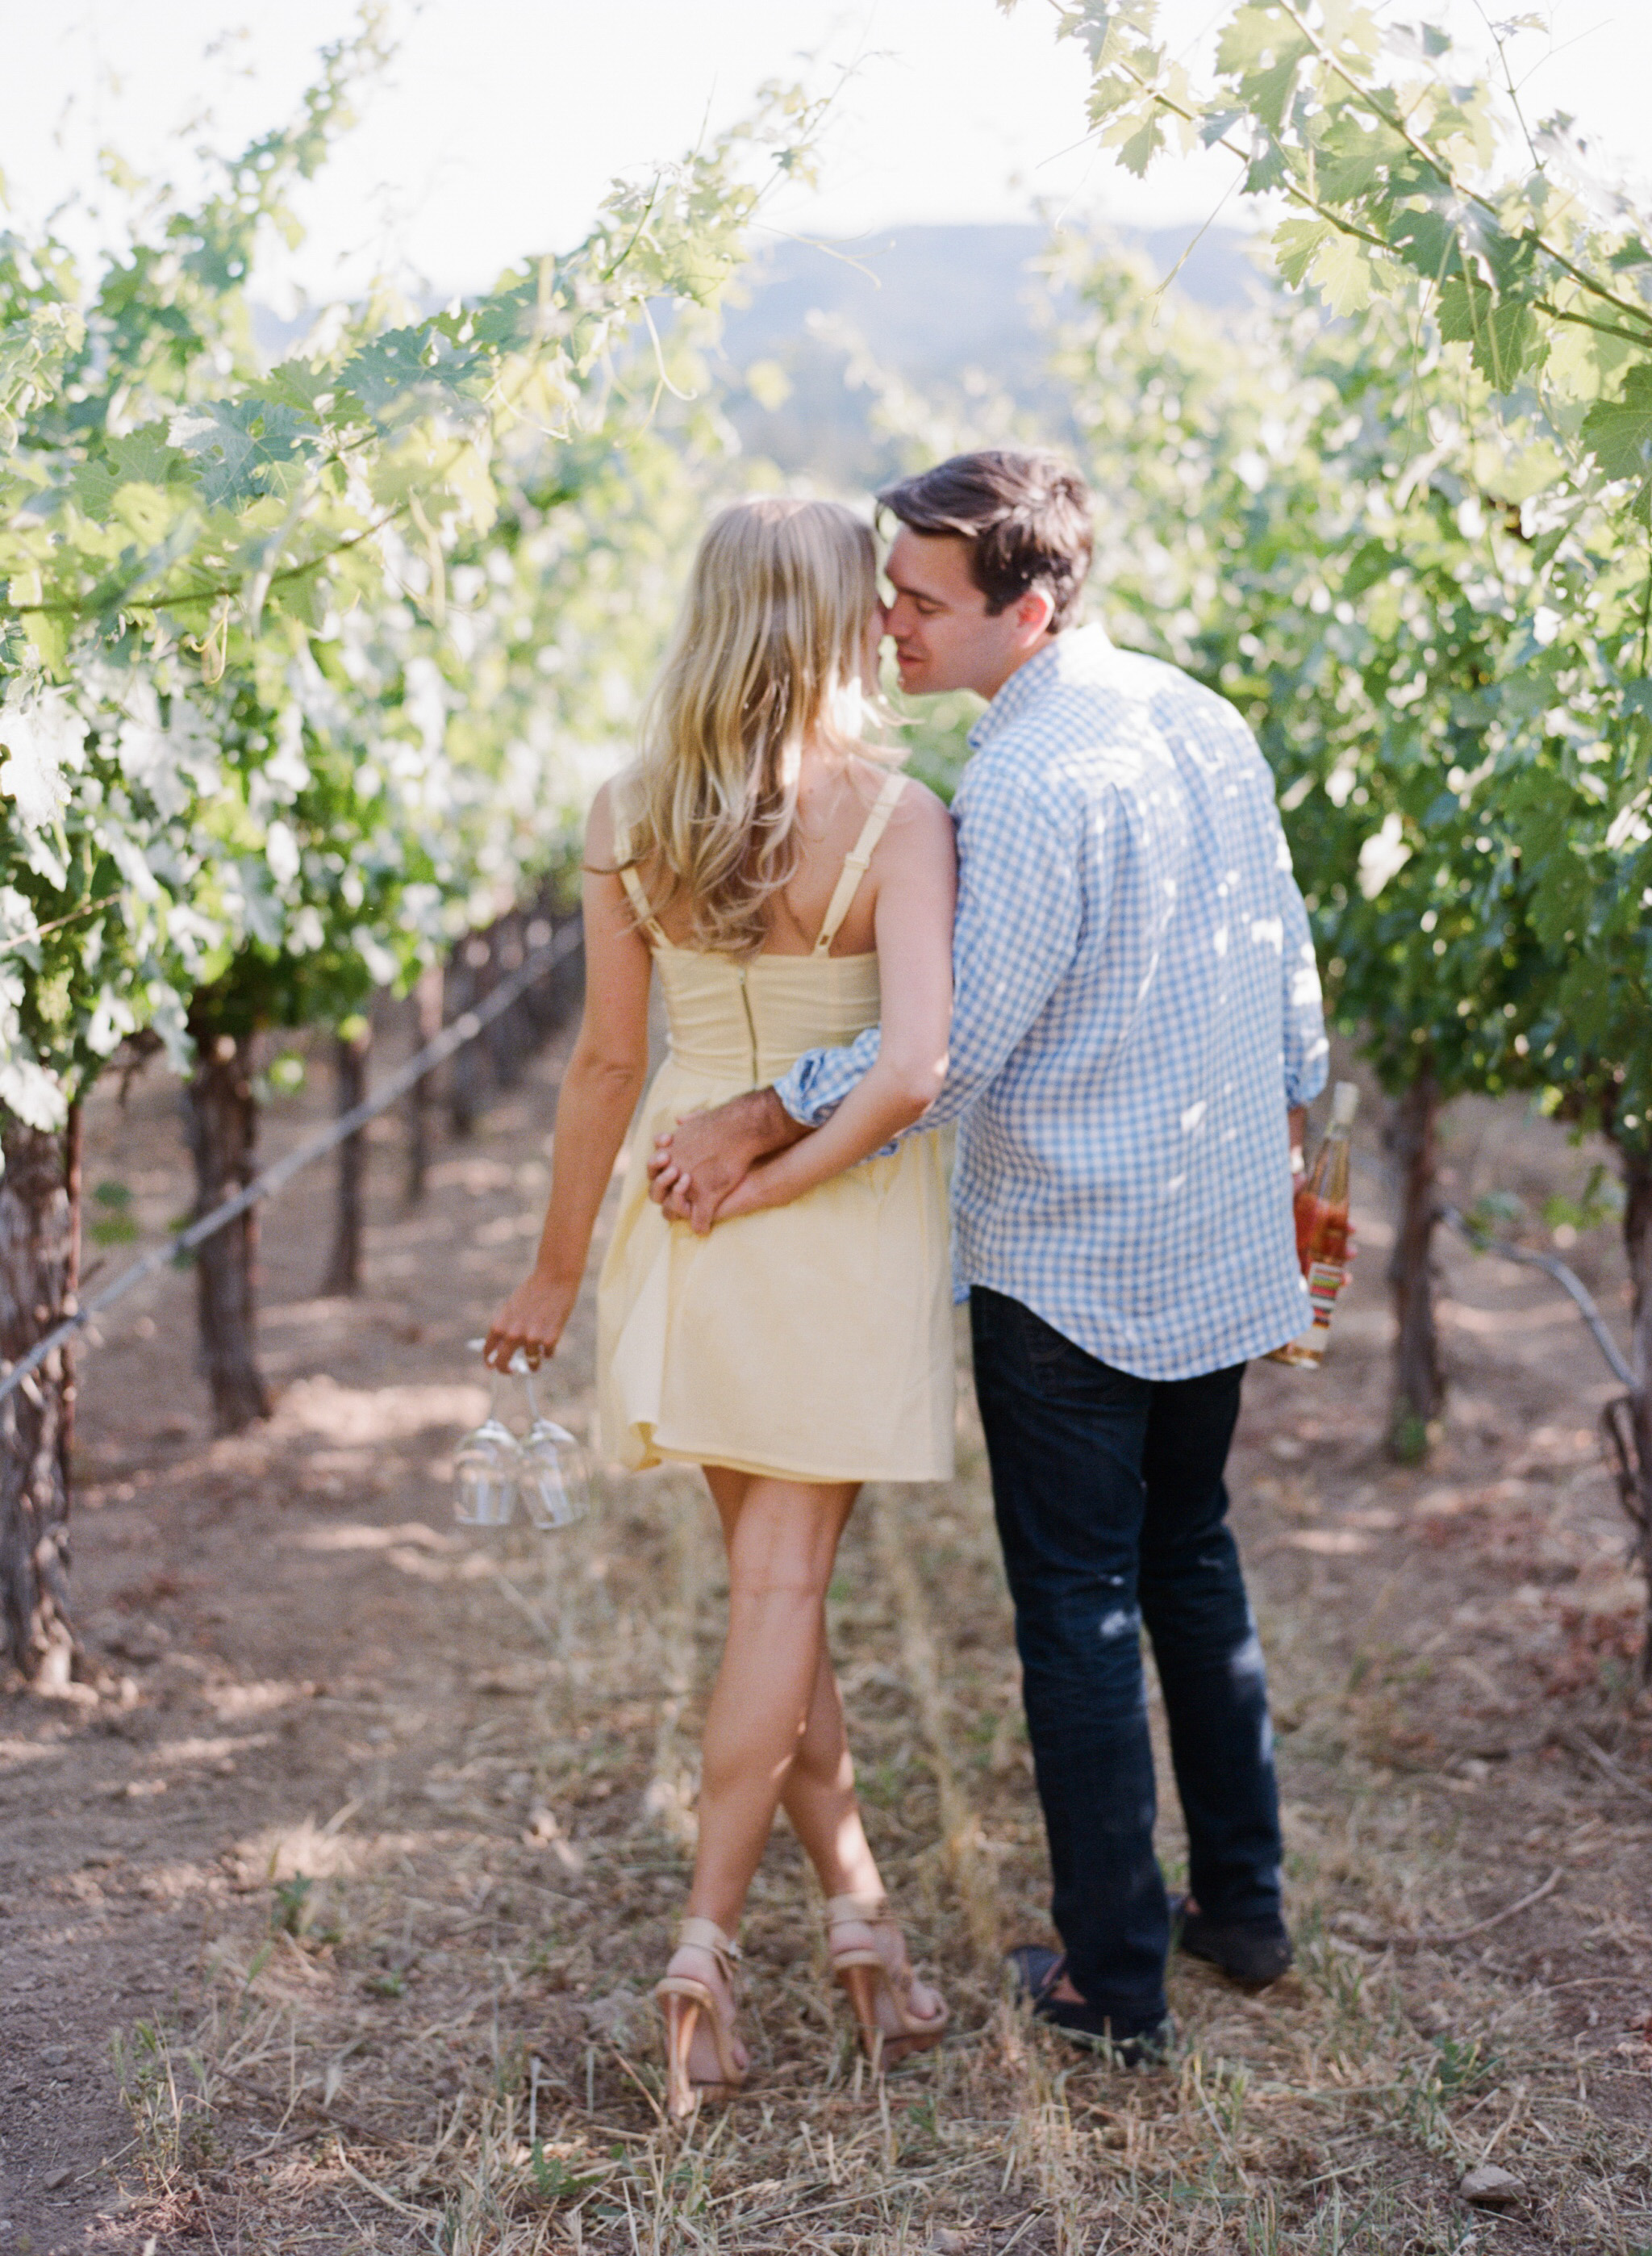 An intimate moment between two fiancees in a Napa Valley vineyard  during an engagement session with Sylvie Gil.